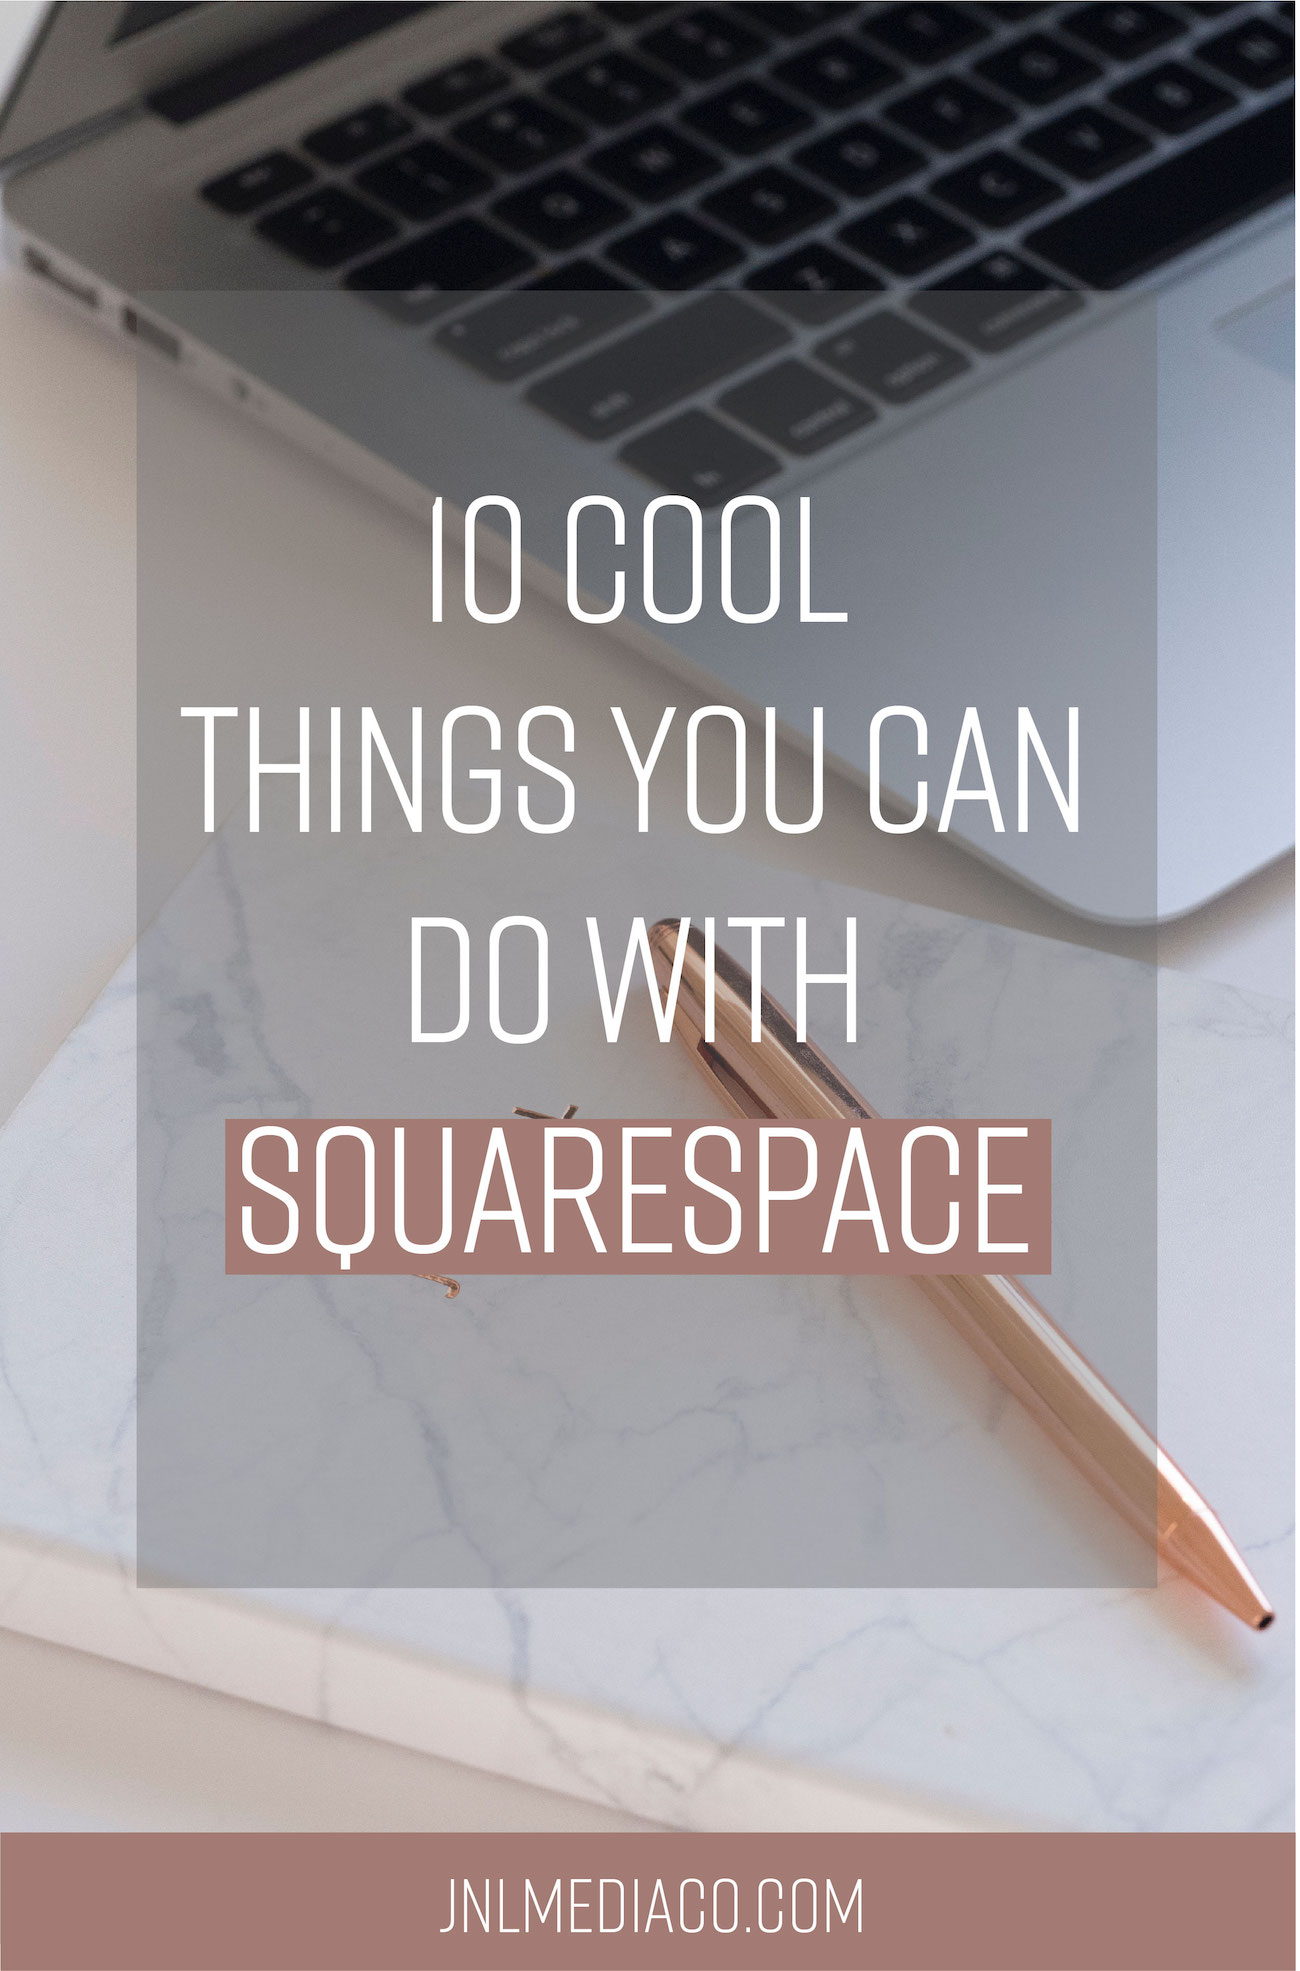 From booking client calls with Acuity to using the Archive button to display your blog categories. Find out 10 cool things you can do with Squarespace! #squarespacetips